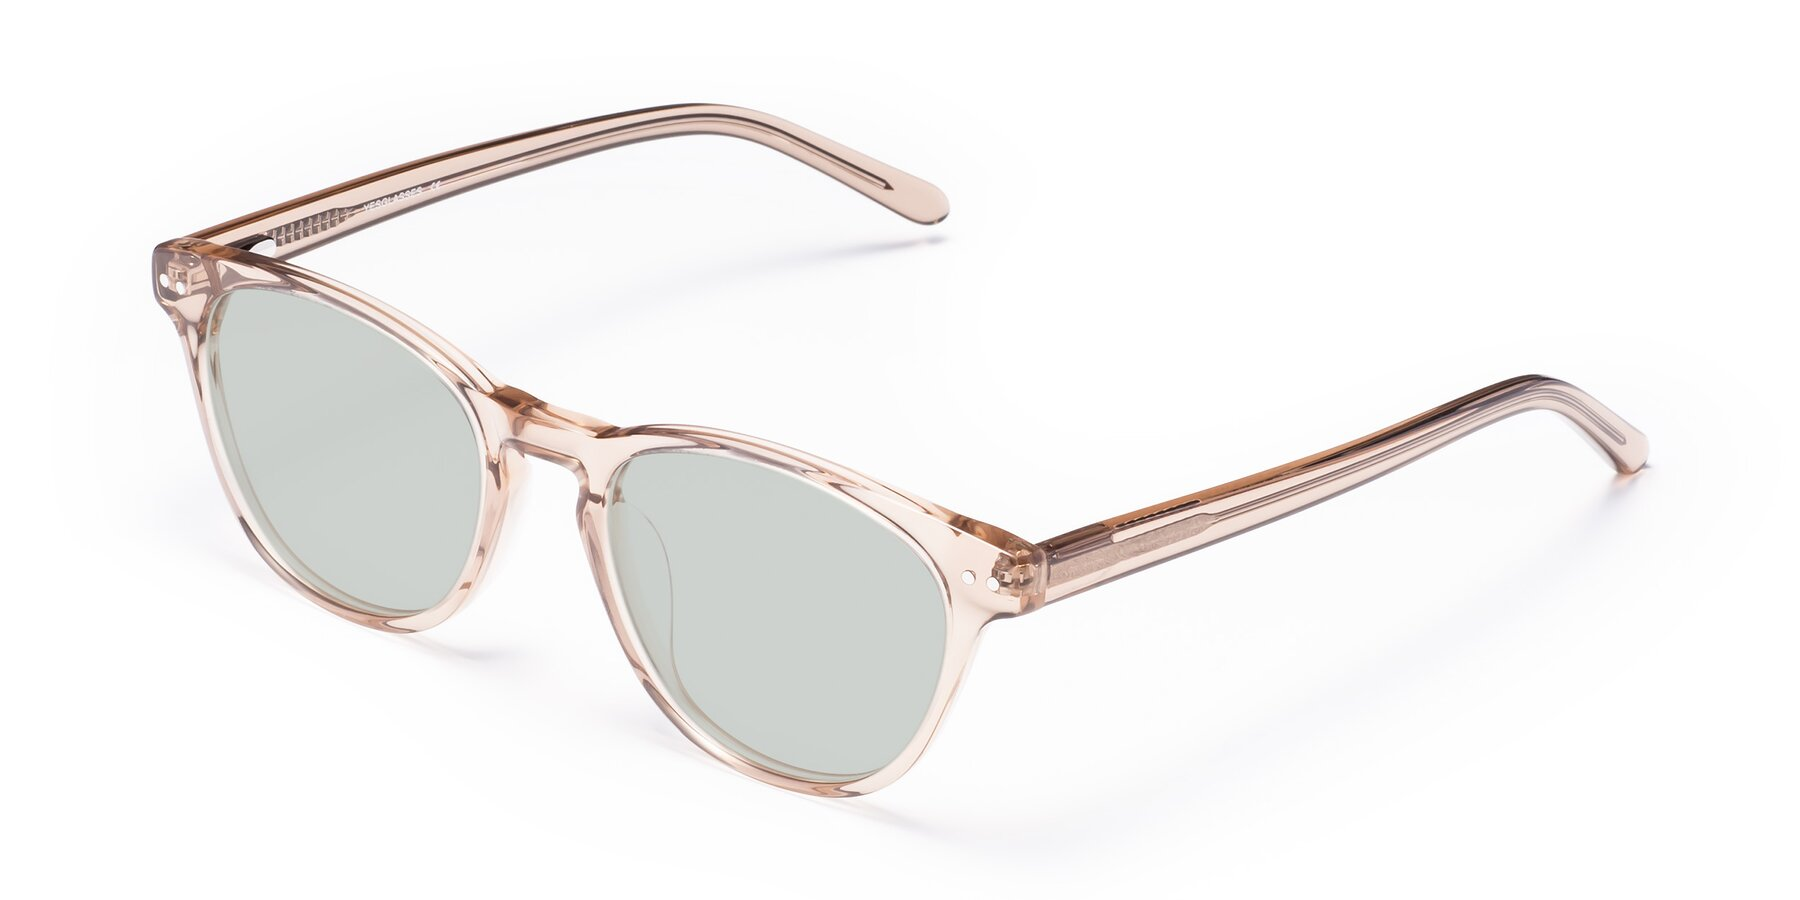 Angle of Blaze in light Brown with Light Green Tinted Lenses